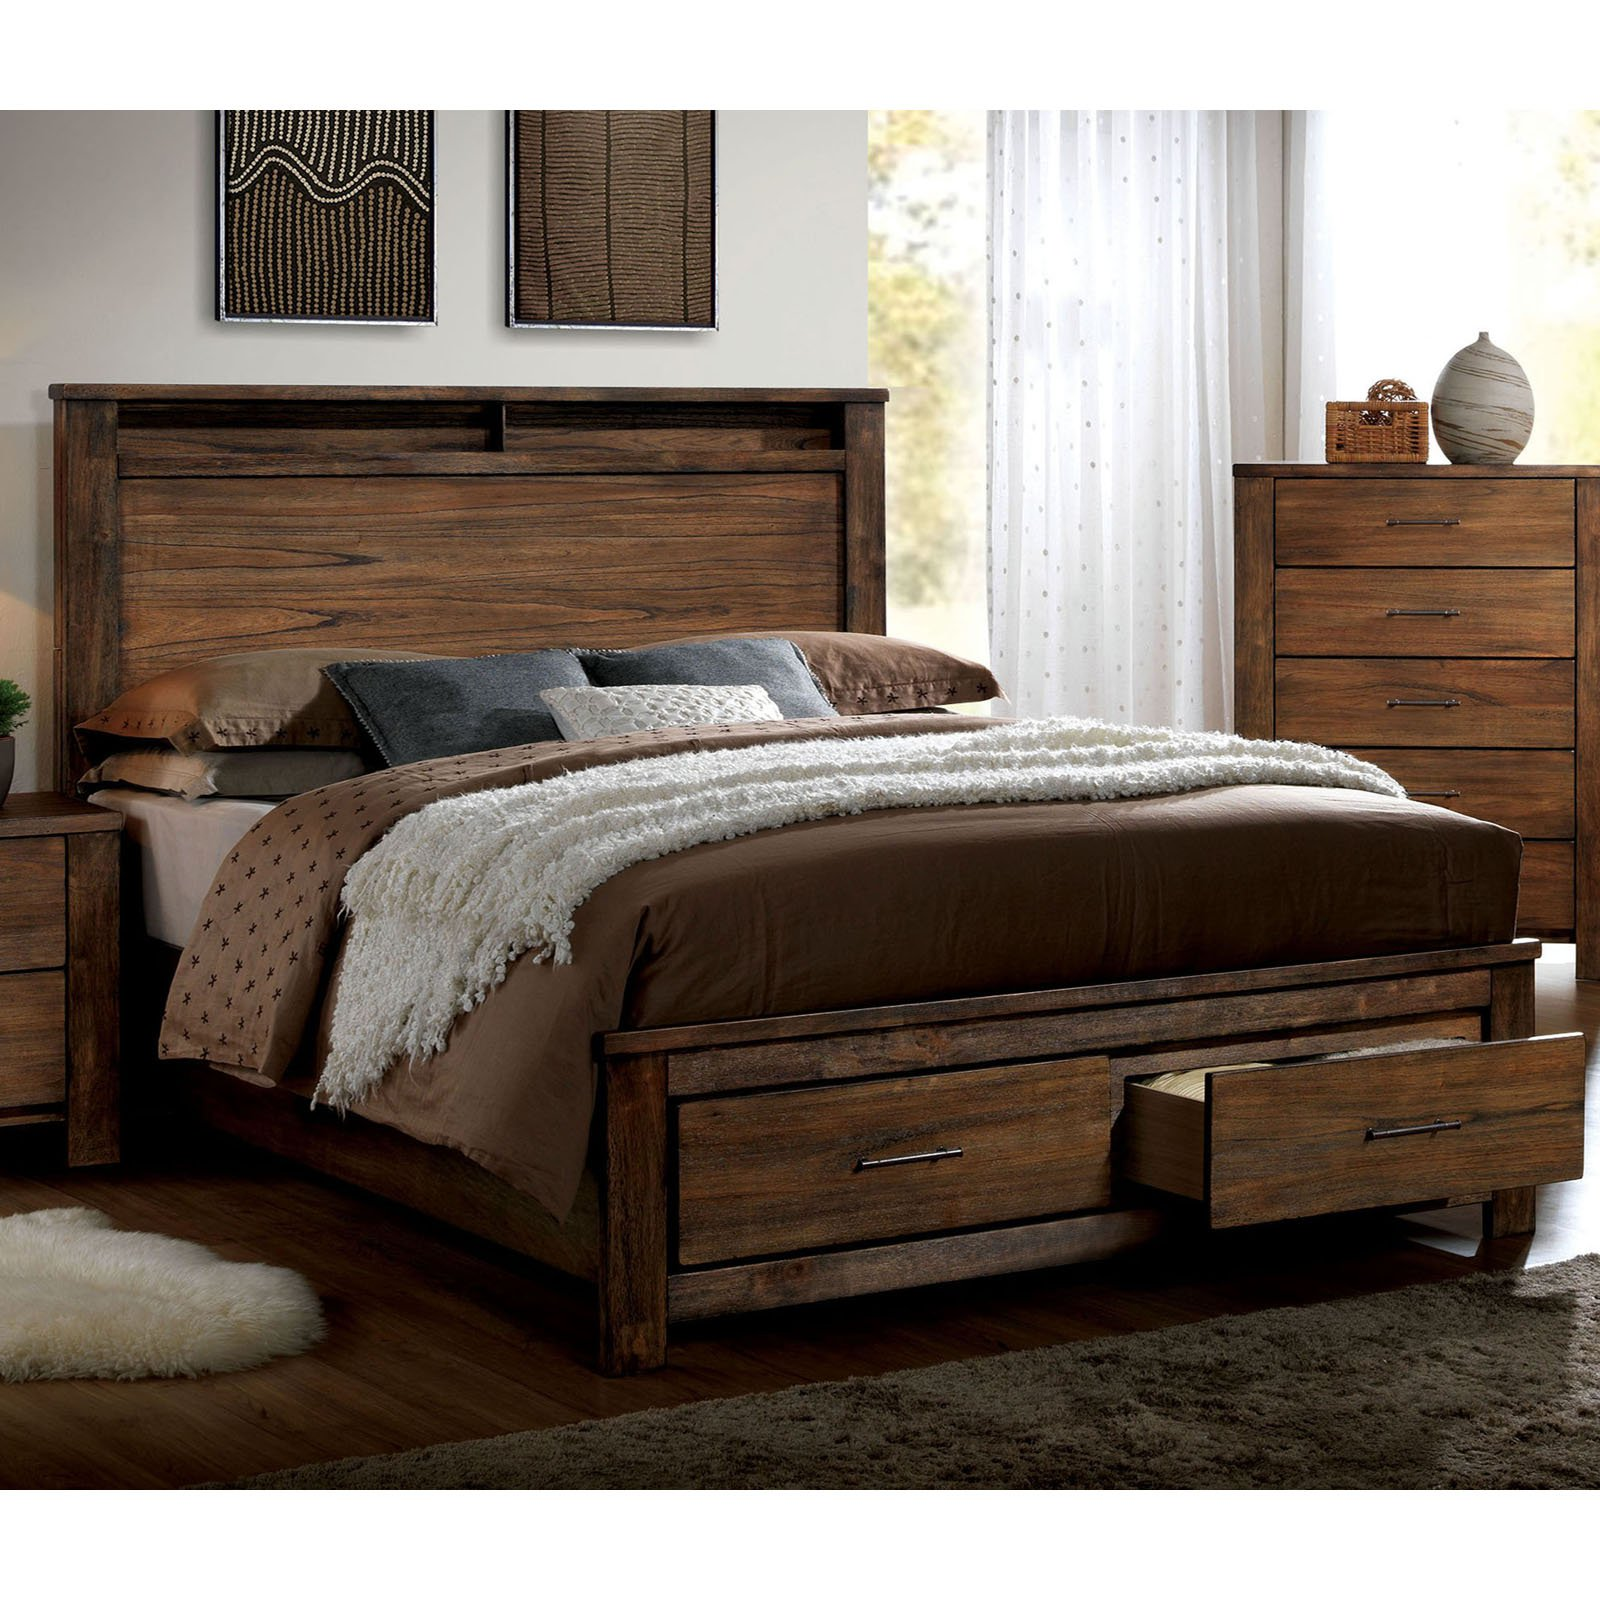 Furniture of America Orlando Storage Platform Bed